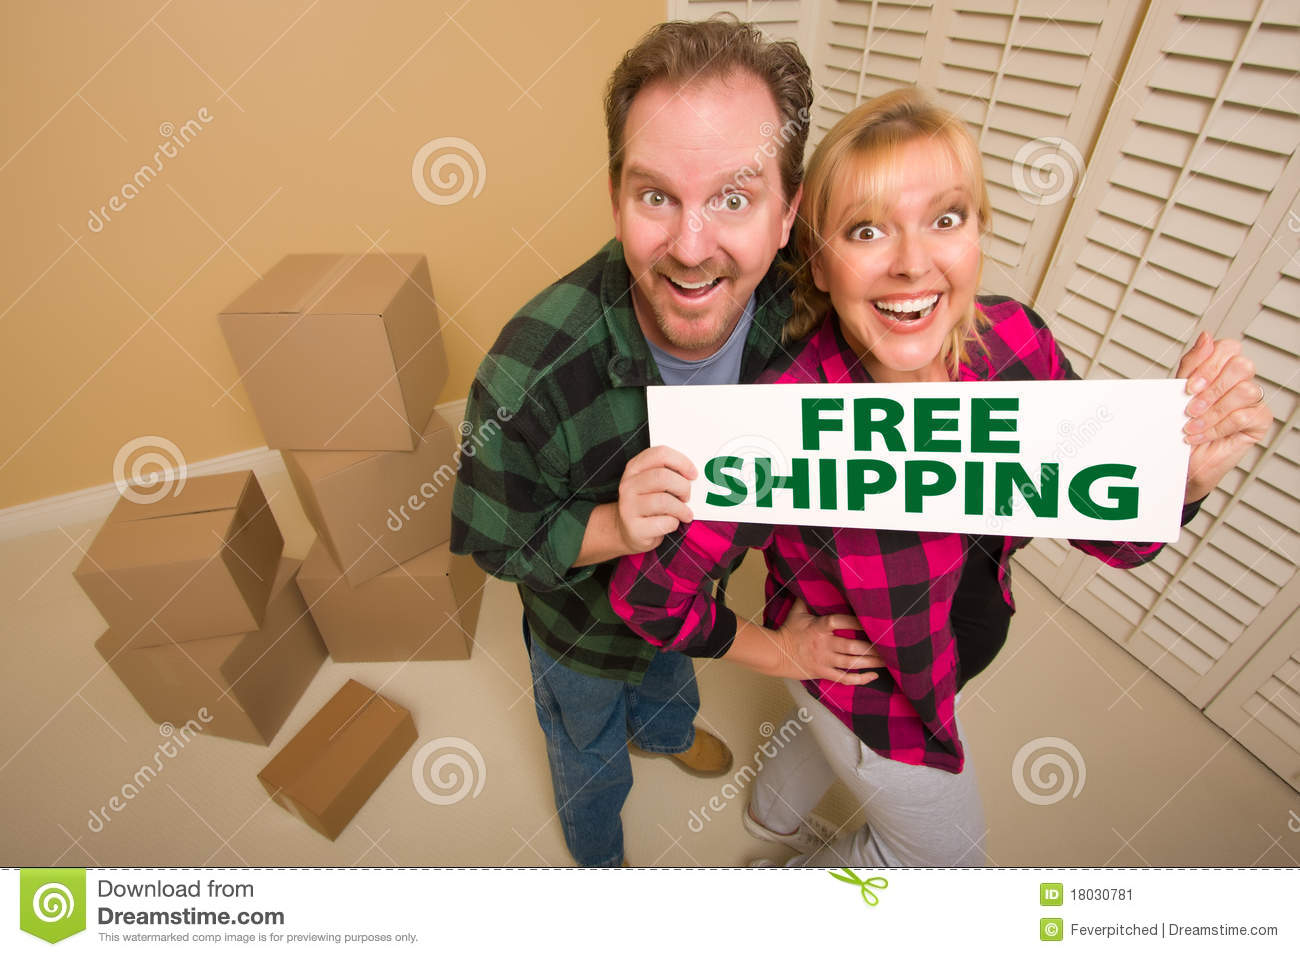 Download Goofy Couple Holding Free Shipping Sign Near Boxes Stock Image - Image of angle, real: 18030781